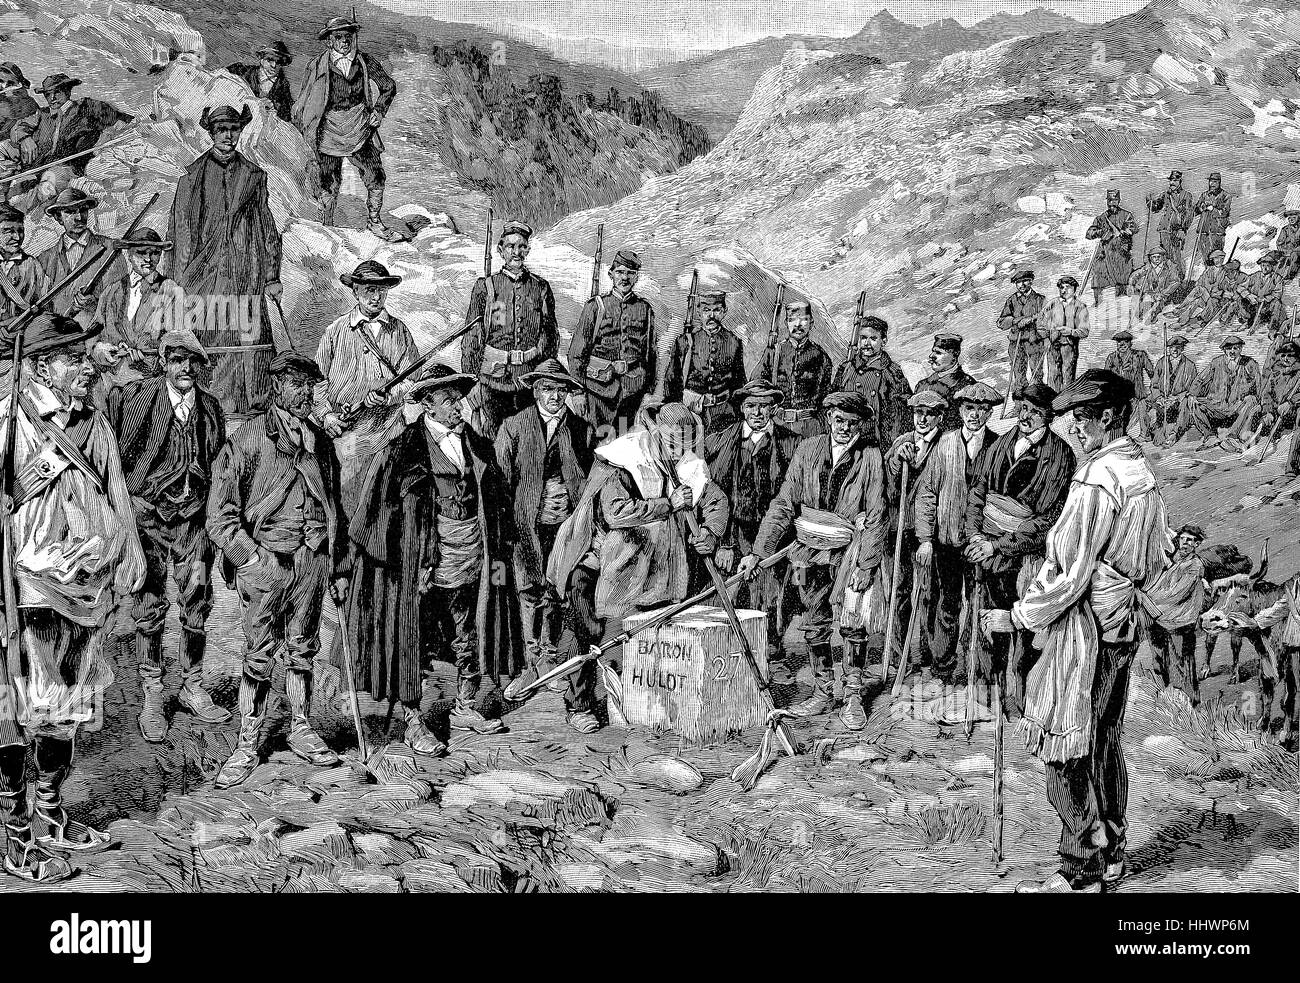 Das Stierlehen, Taurus fief in the Pyrenees, Spain, historical image or illustration, published 1890, digital improved - Stock Image